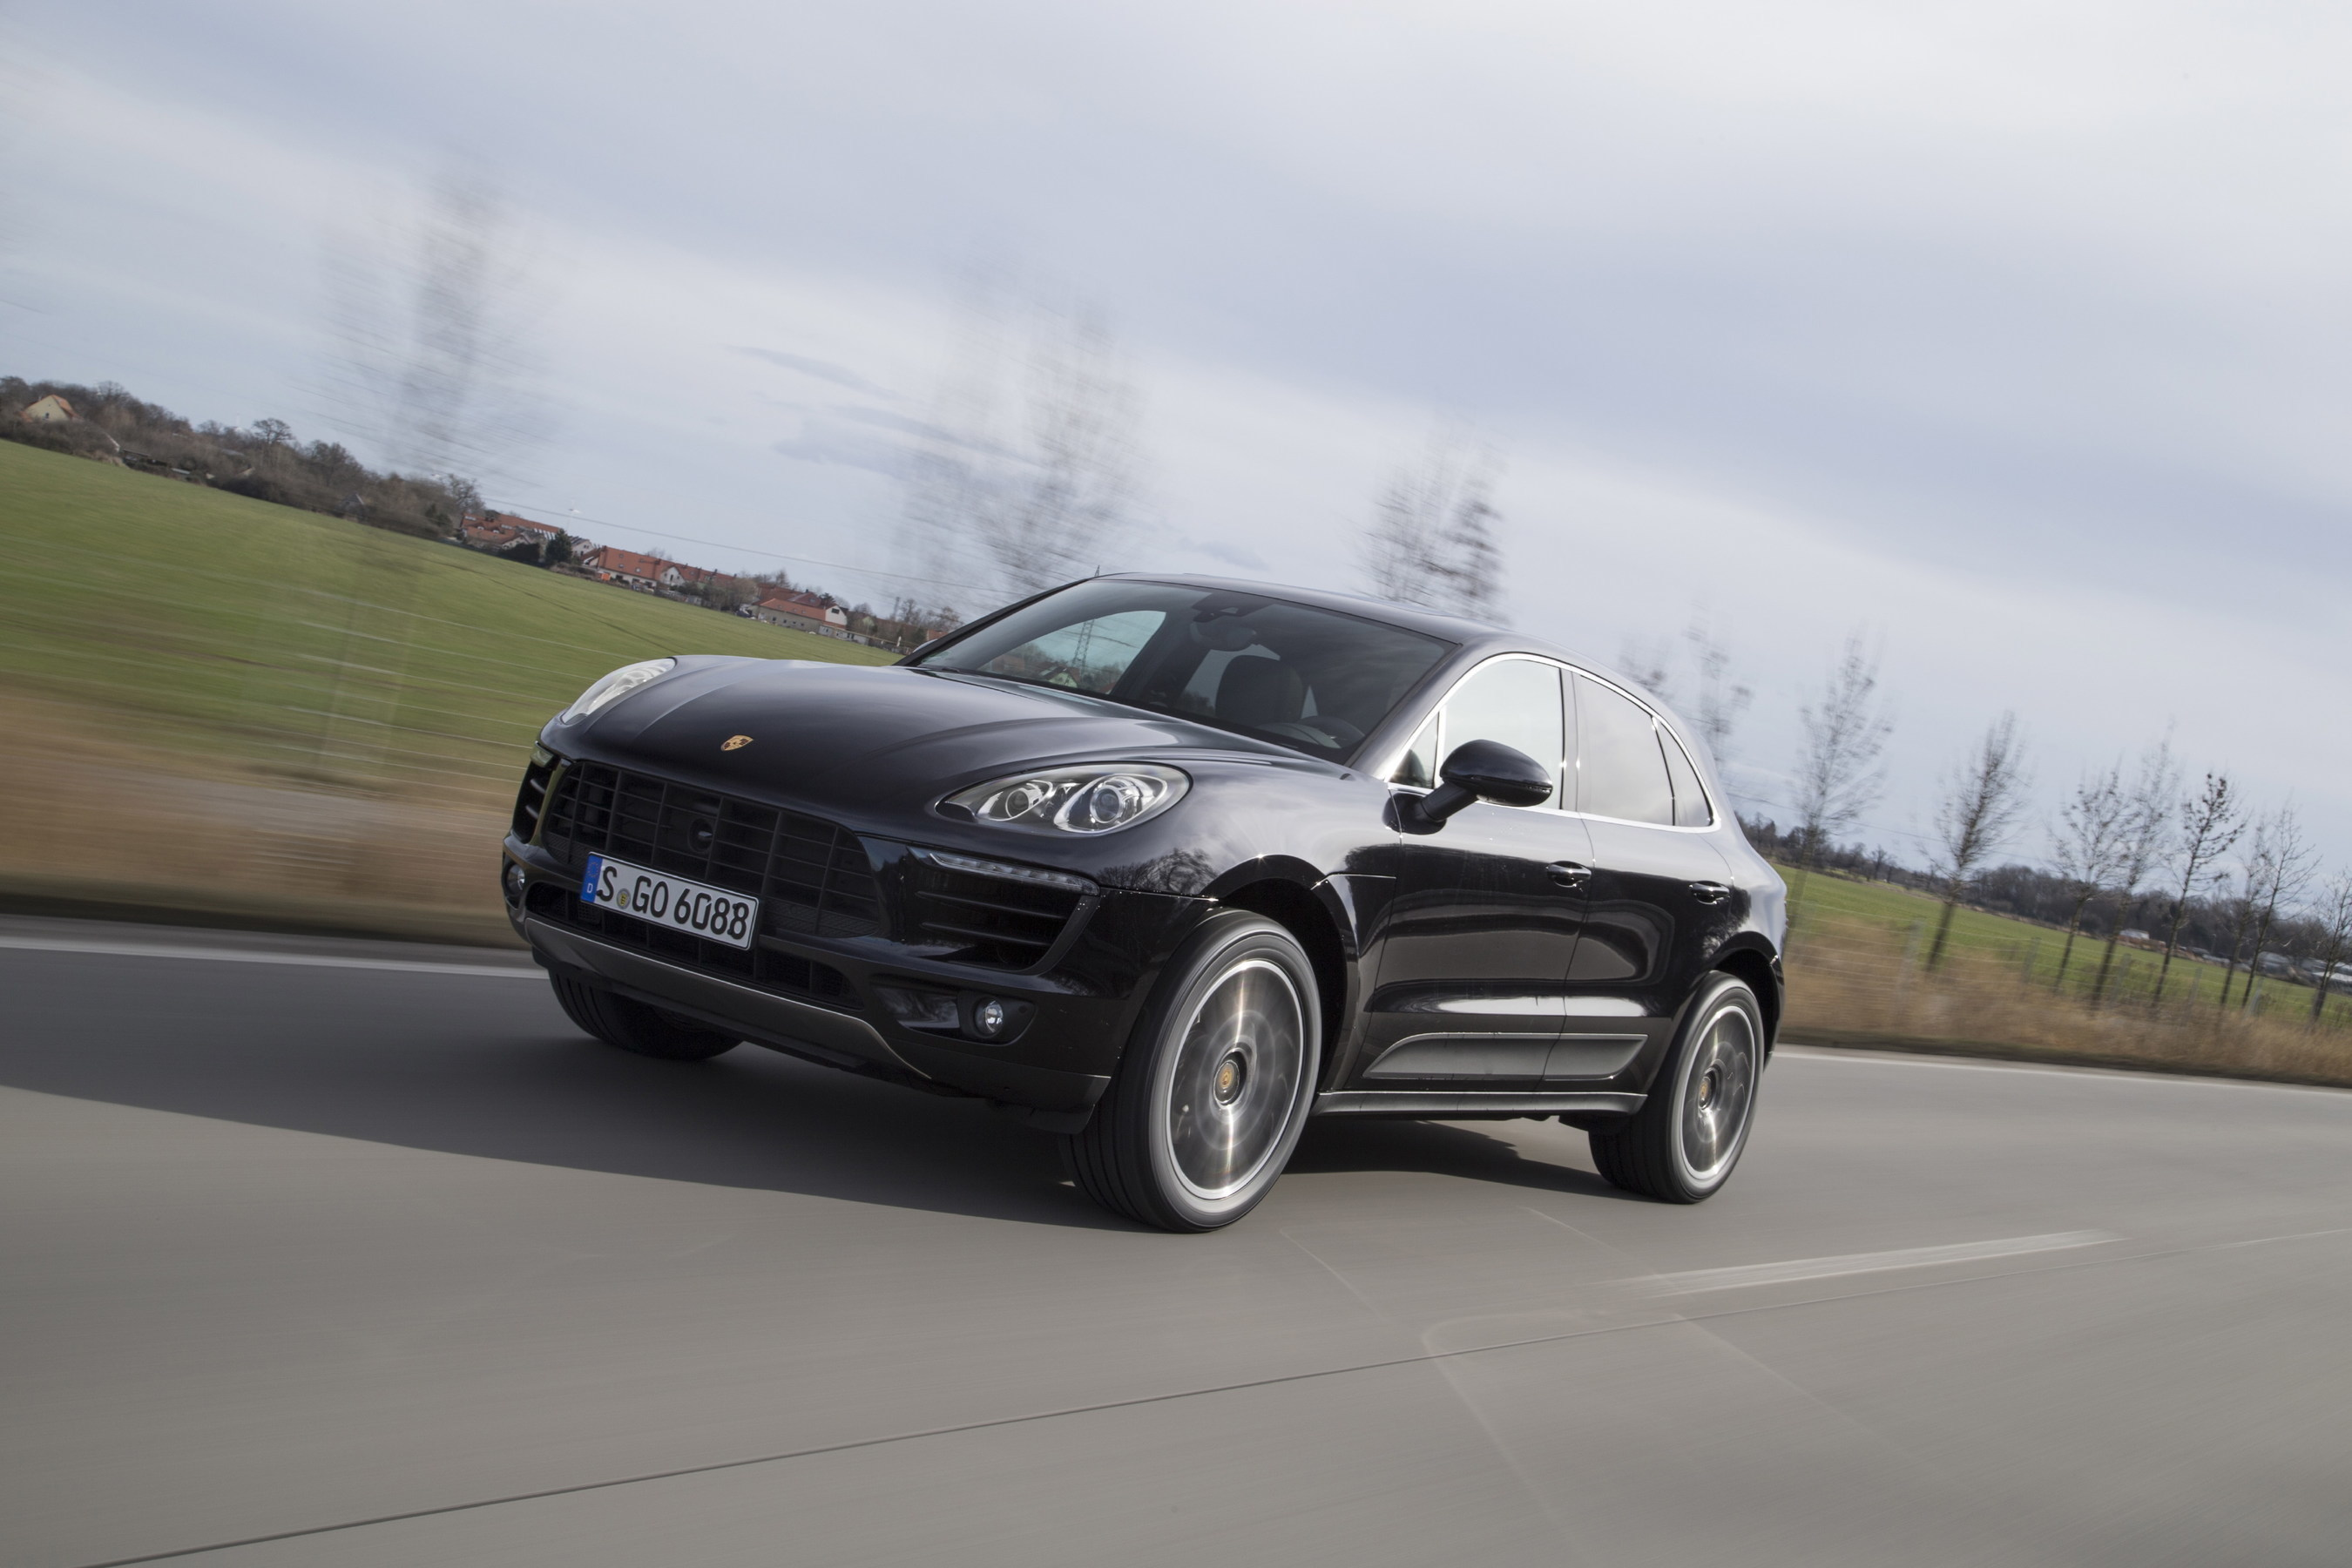 The Porsche Macan - in its first year included in the study - ranks highest in the J.D. Power 'APEAL' study 'Compact Premium SUV' segment.